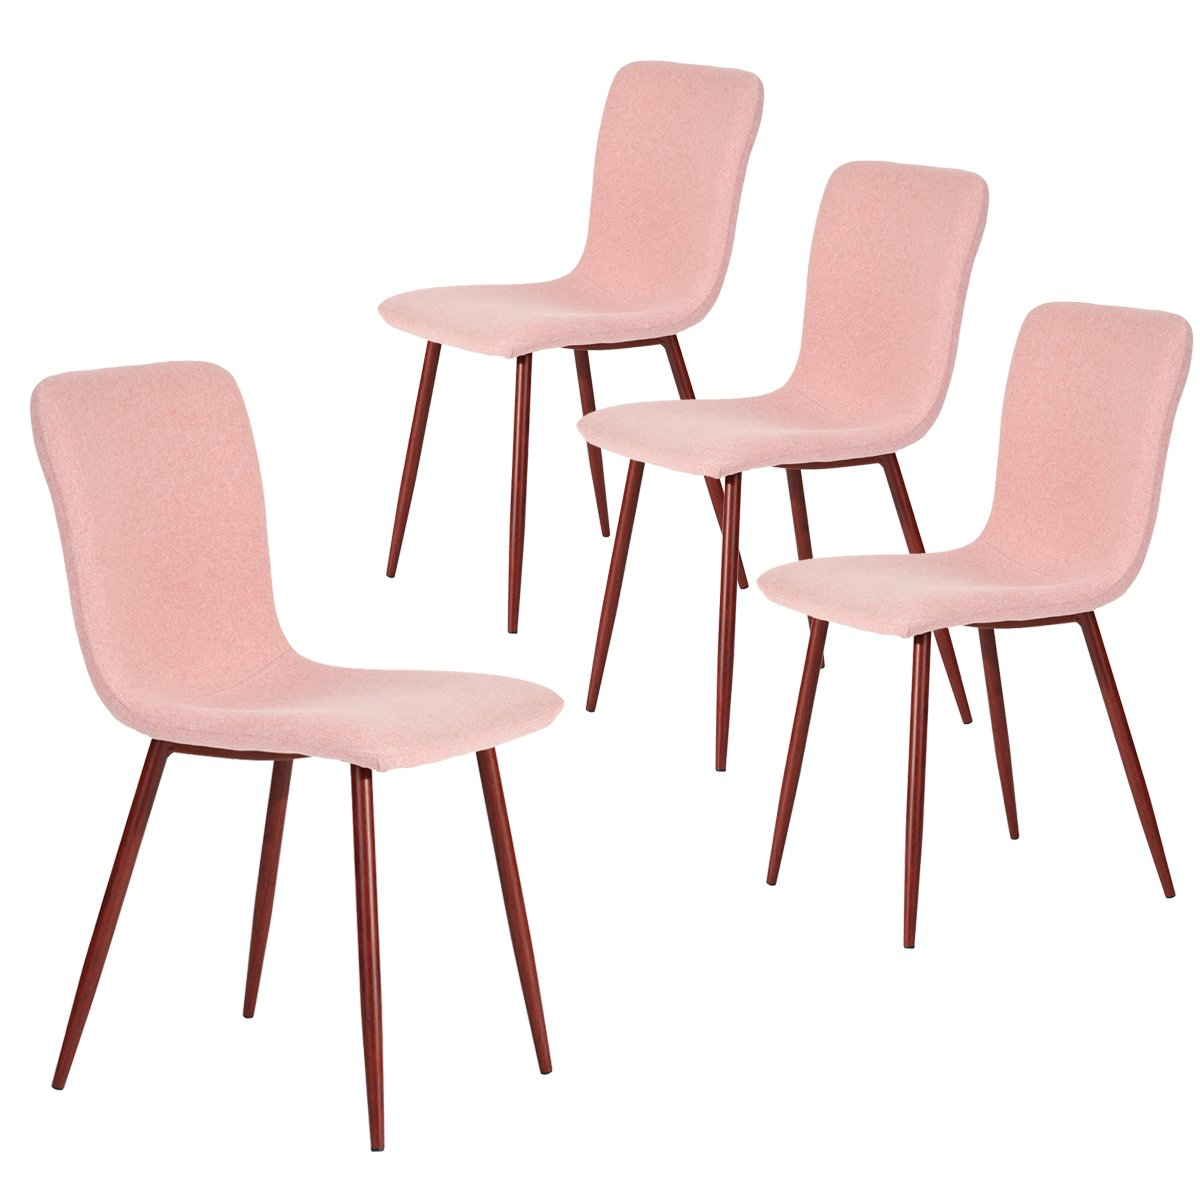 Coavas Dining Chairs Set of 4 Fabric Cushion Kitchen Table Chairs with Sturdy Metal Legs for Dining Room Chairs, Pink